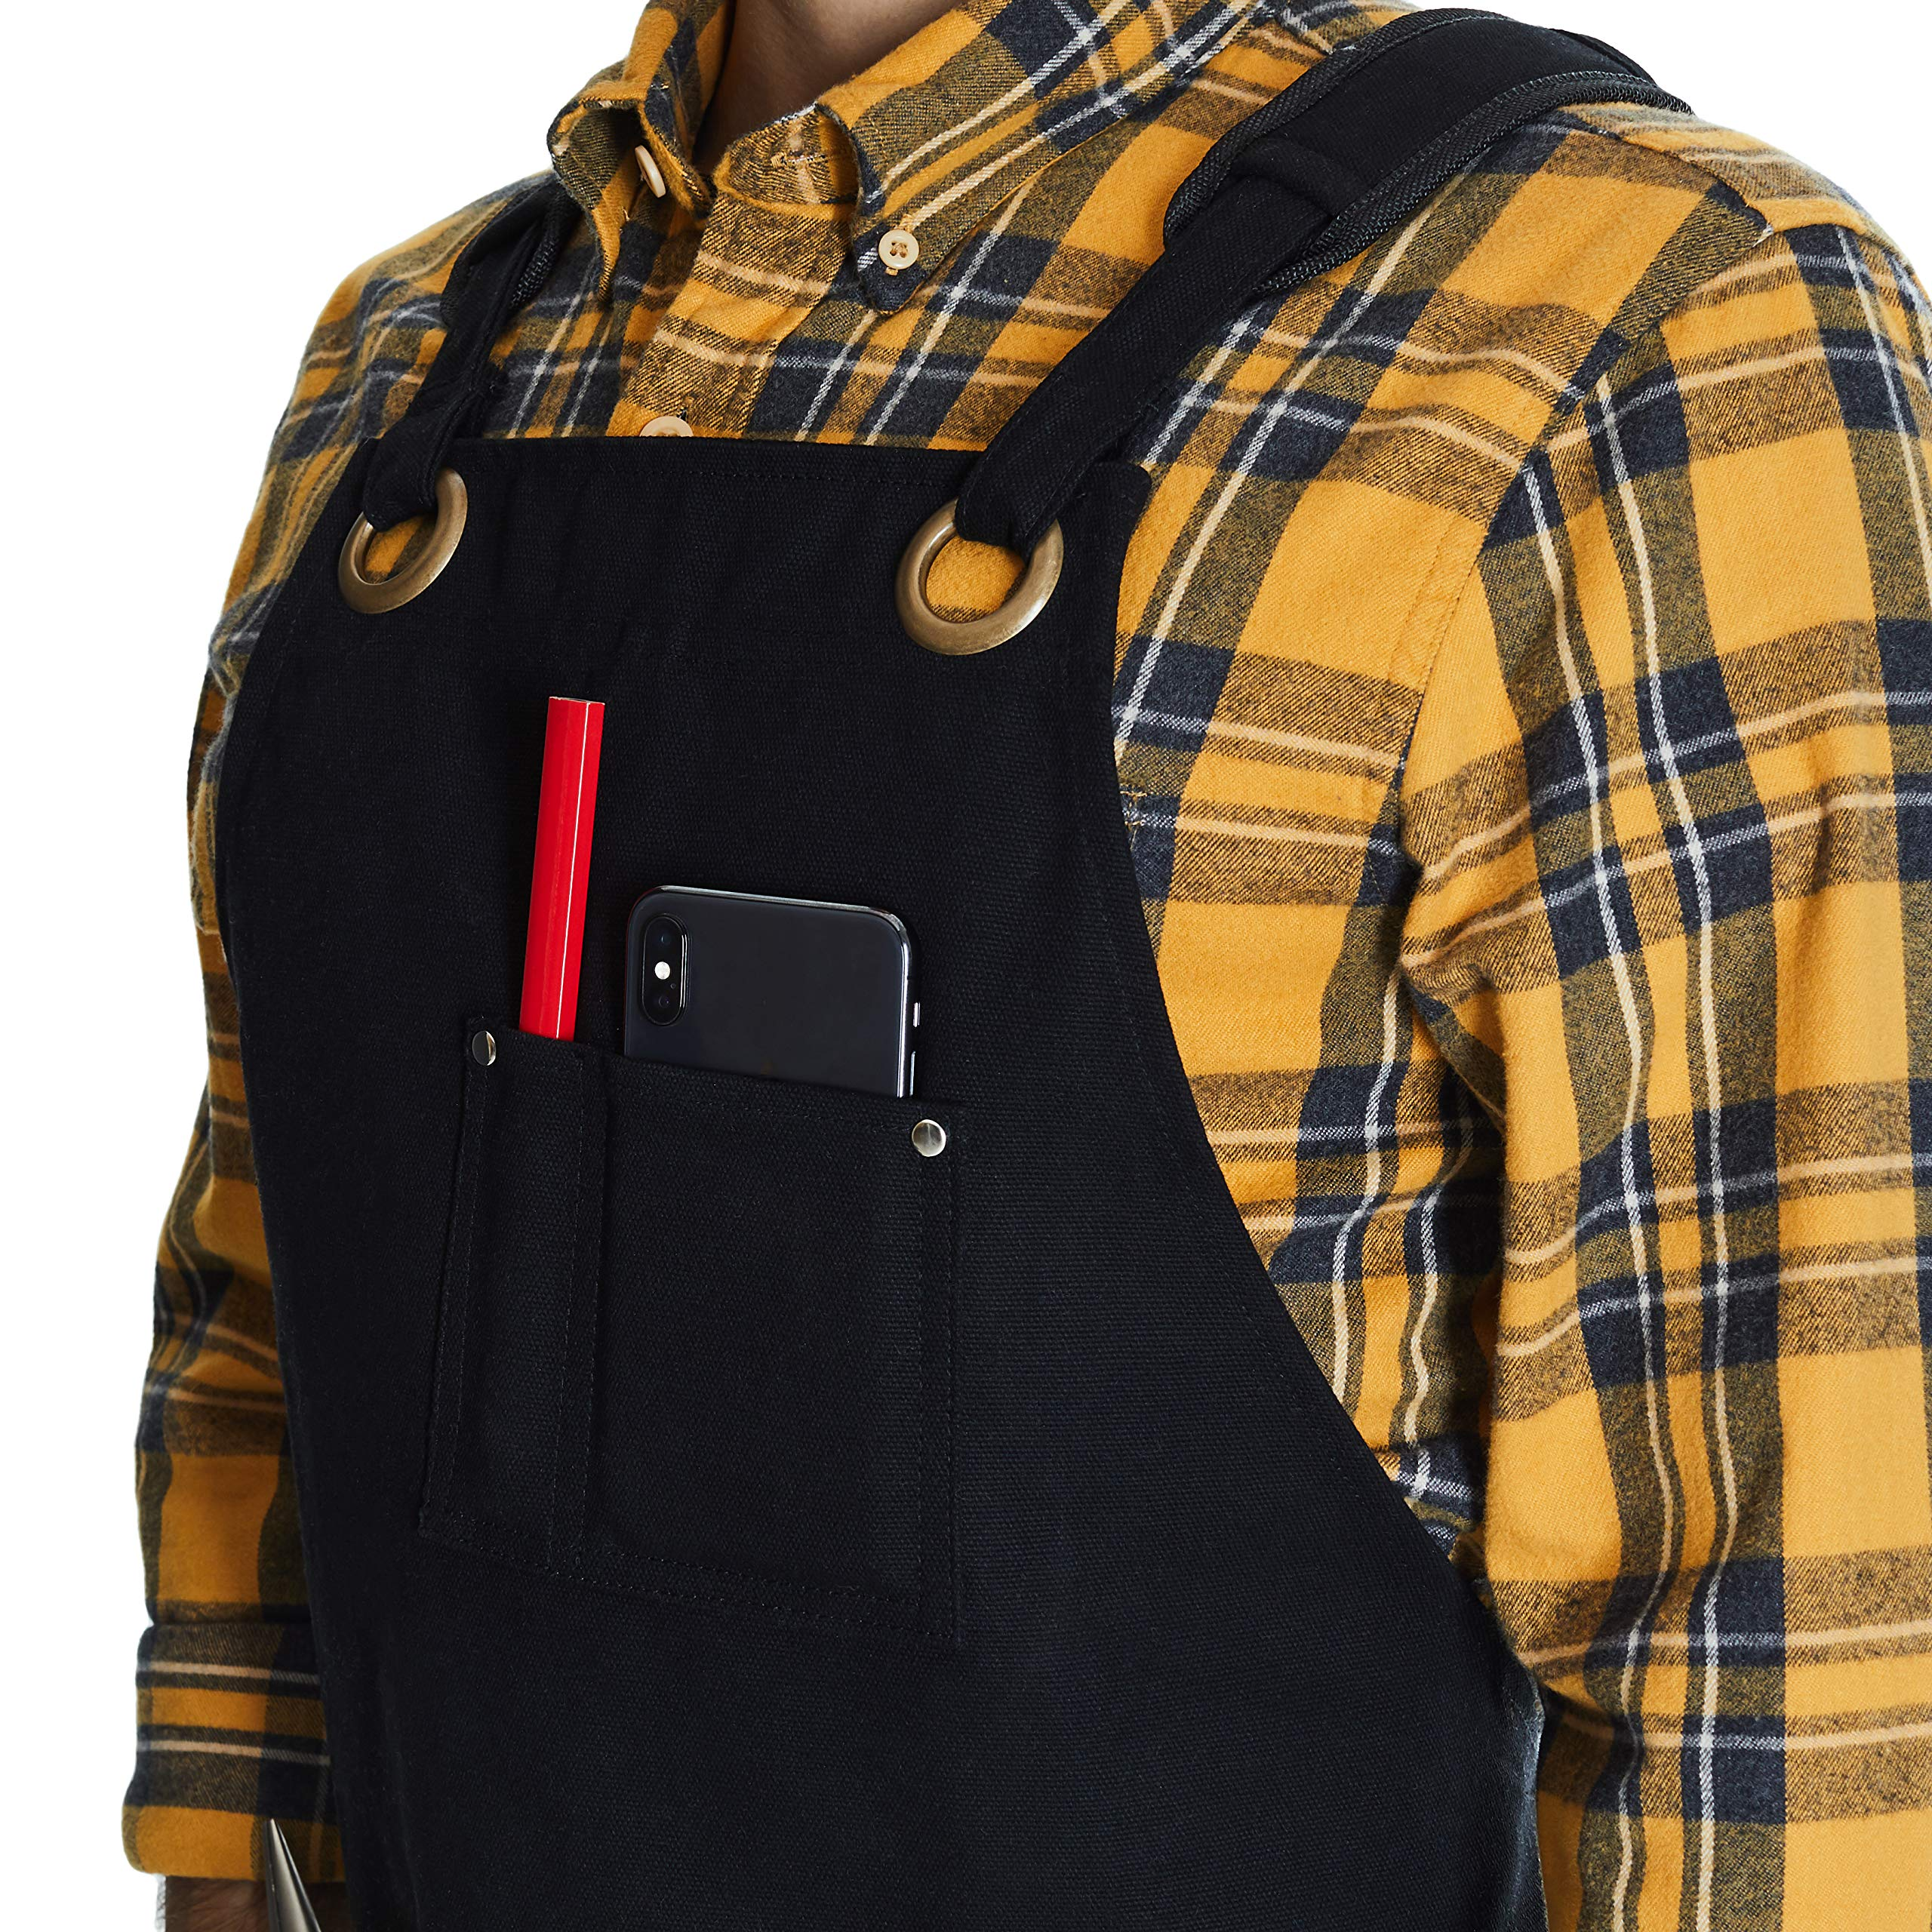 Shop, Work Apron - Waxed Canvas woodworking apron with 6 Spacious Pockets - Durable Apron Tool with Microfiber Towel Included - No Neck Pain, Smart Cross-Back Straps Design - Fully Adjustable S to XXL by Makara.907 (Image #6)